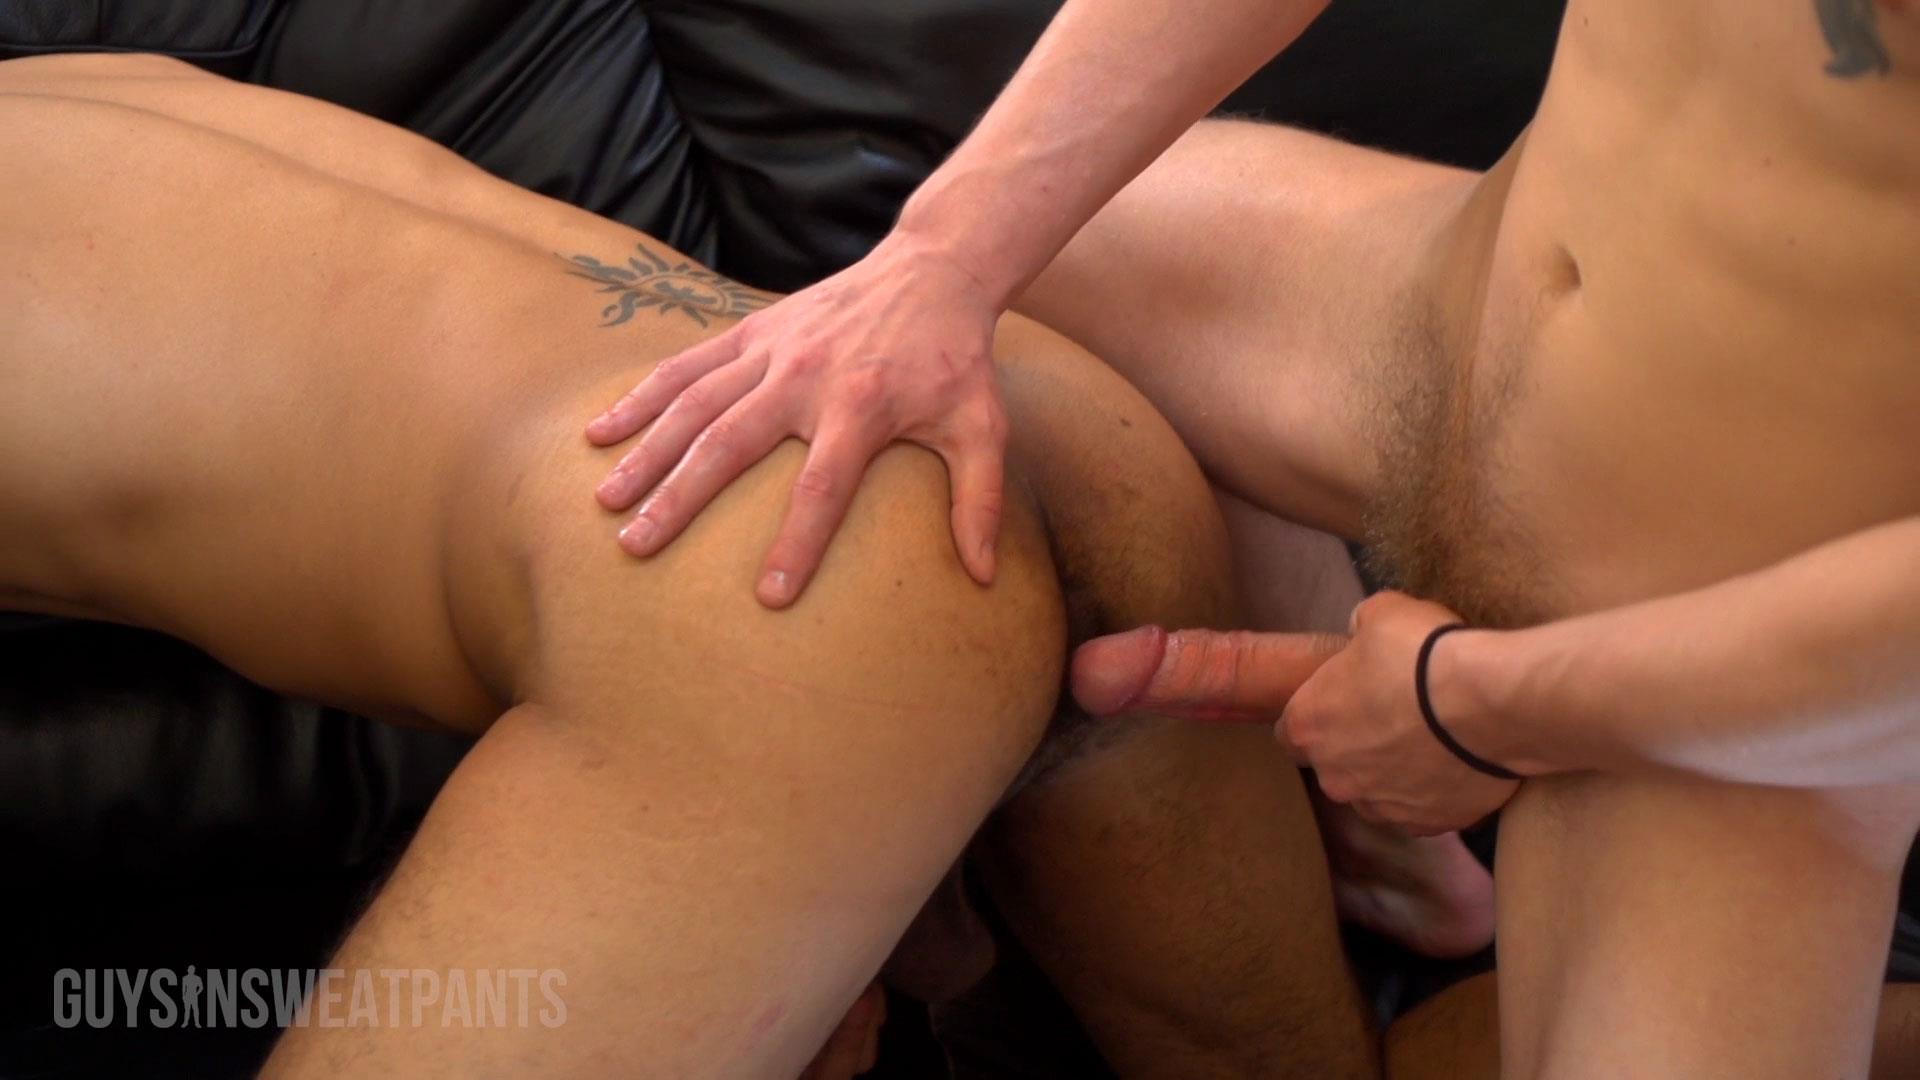 Guys-In-Sweatpants-Ezekiel-Stone-and-Dillon-Hays-Interracial-bareback-fucking-Amateur-Gay-Porn-03 Hot Black Guy Gets Barebacked By A Sexy White Stud With A Big Uncut Cock